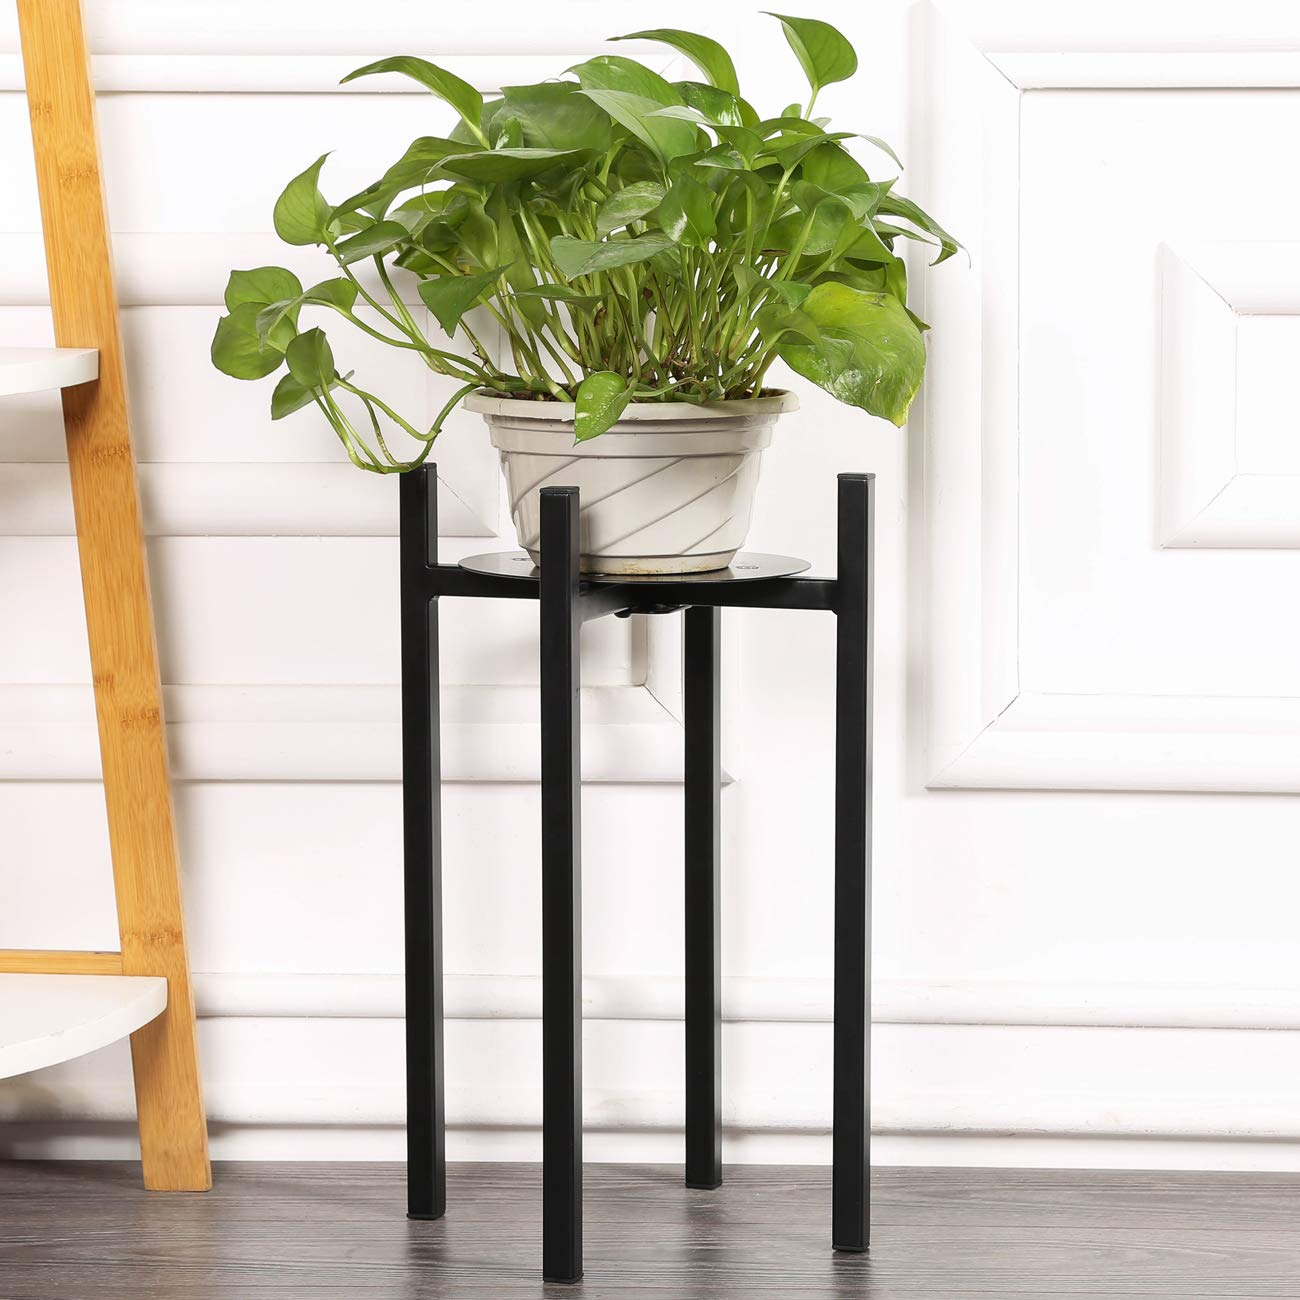 Sunnyglade Plant Stand for Indoor and Outdoor Pots - Black, Metal Potted Plant Holder for House, Garden & Patio - Sturdy, Galvanized Steel Pot Stand with Stylish Mid-Century Design, Medium (15'' High)